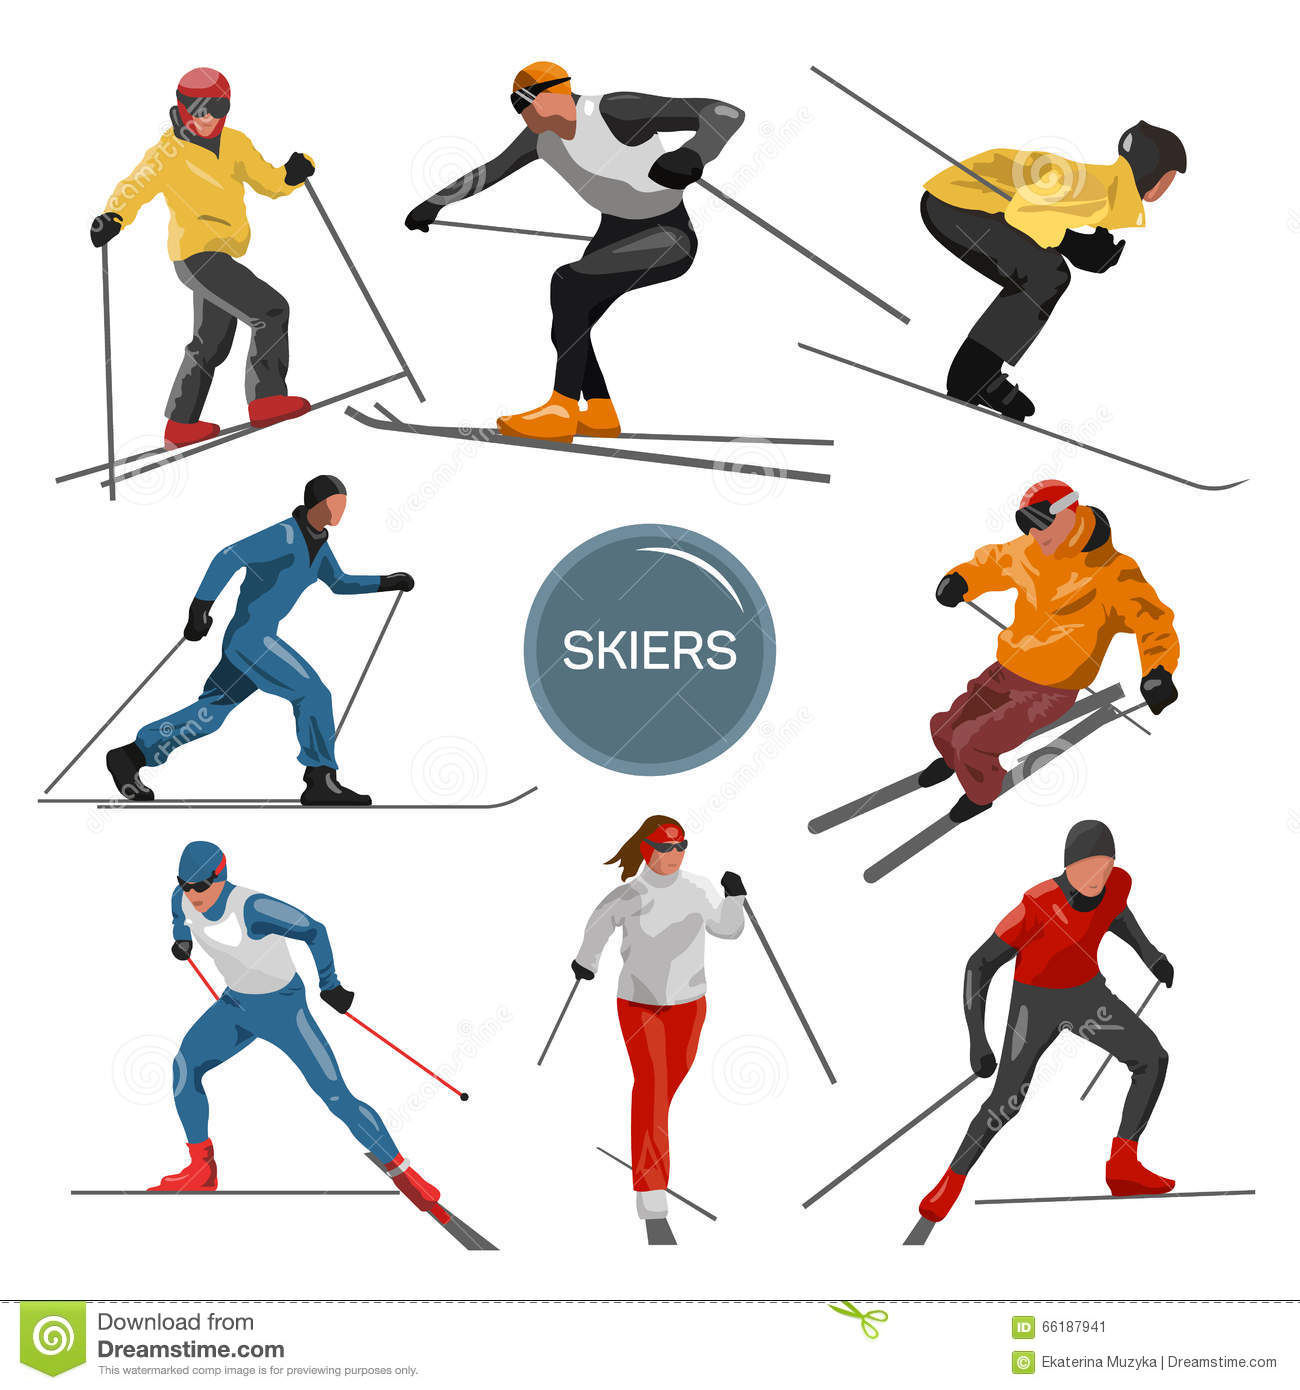 Vector set of skiers. People skiing design elements isolated on white background. Winter sport silhouettes in different